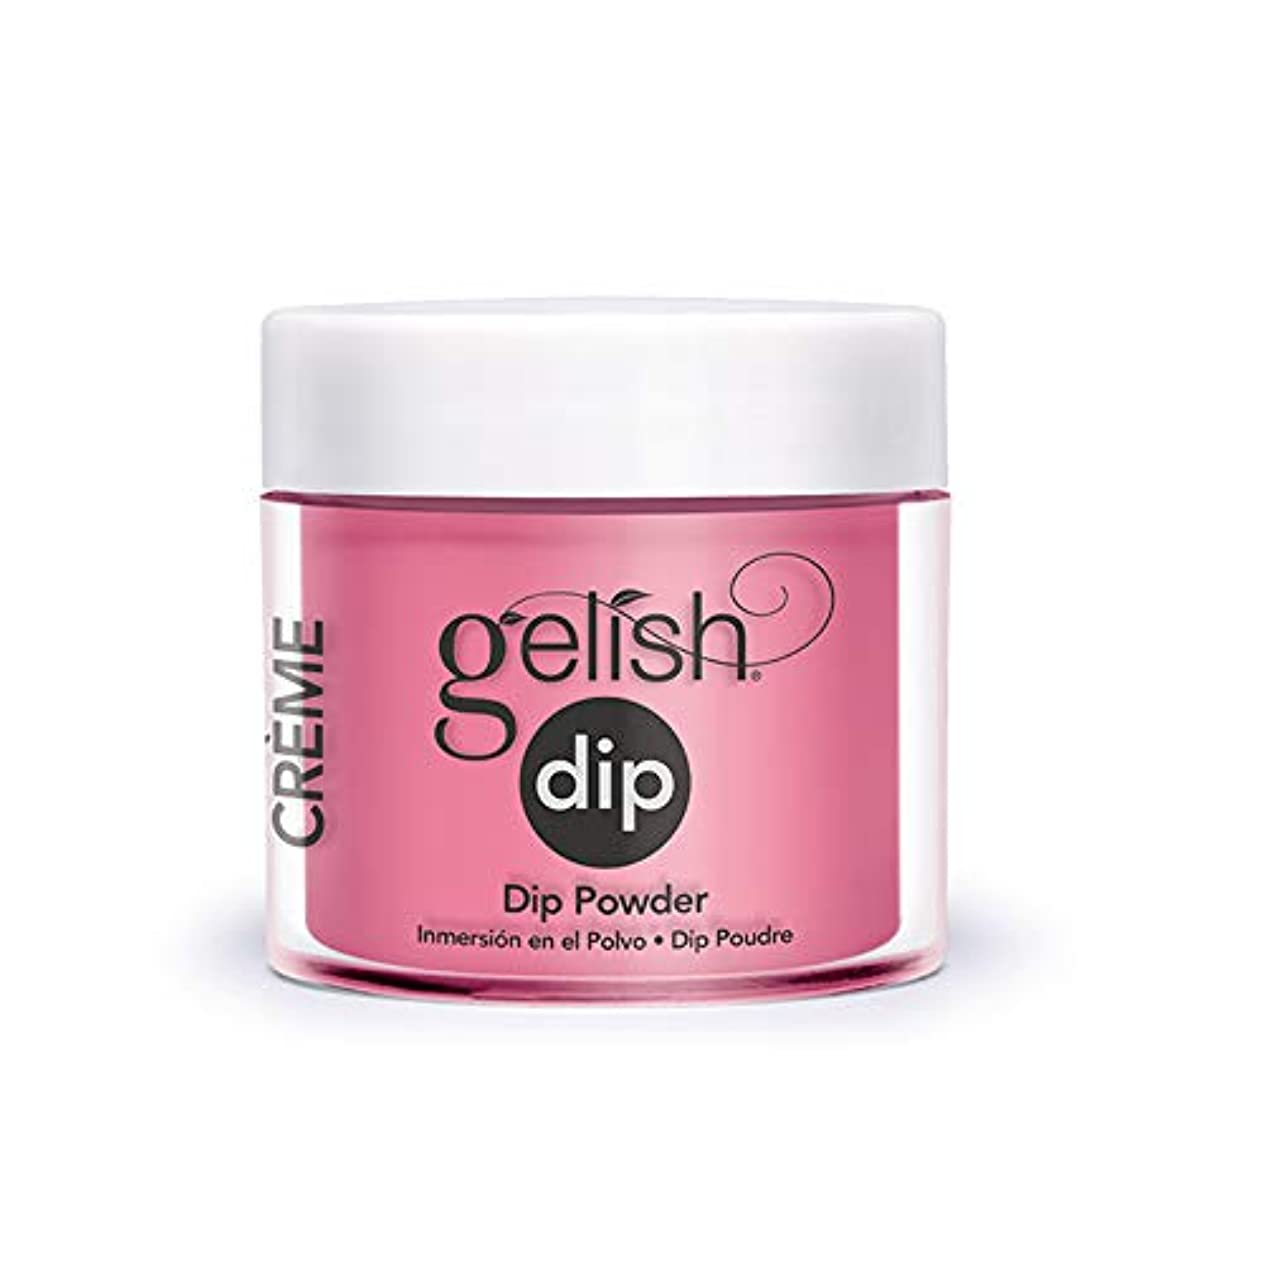 検出可能家具襲撃Harmony Gelish - Acrylic Dip Powder - Make You Blink Pink - 23g / 0.8oz